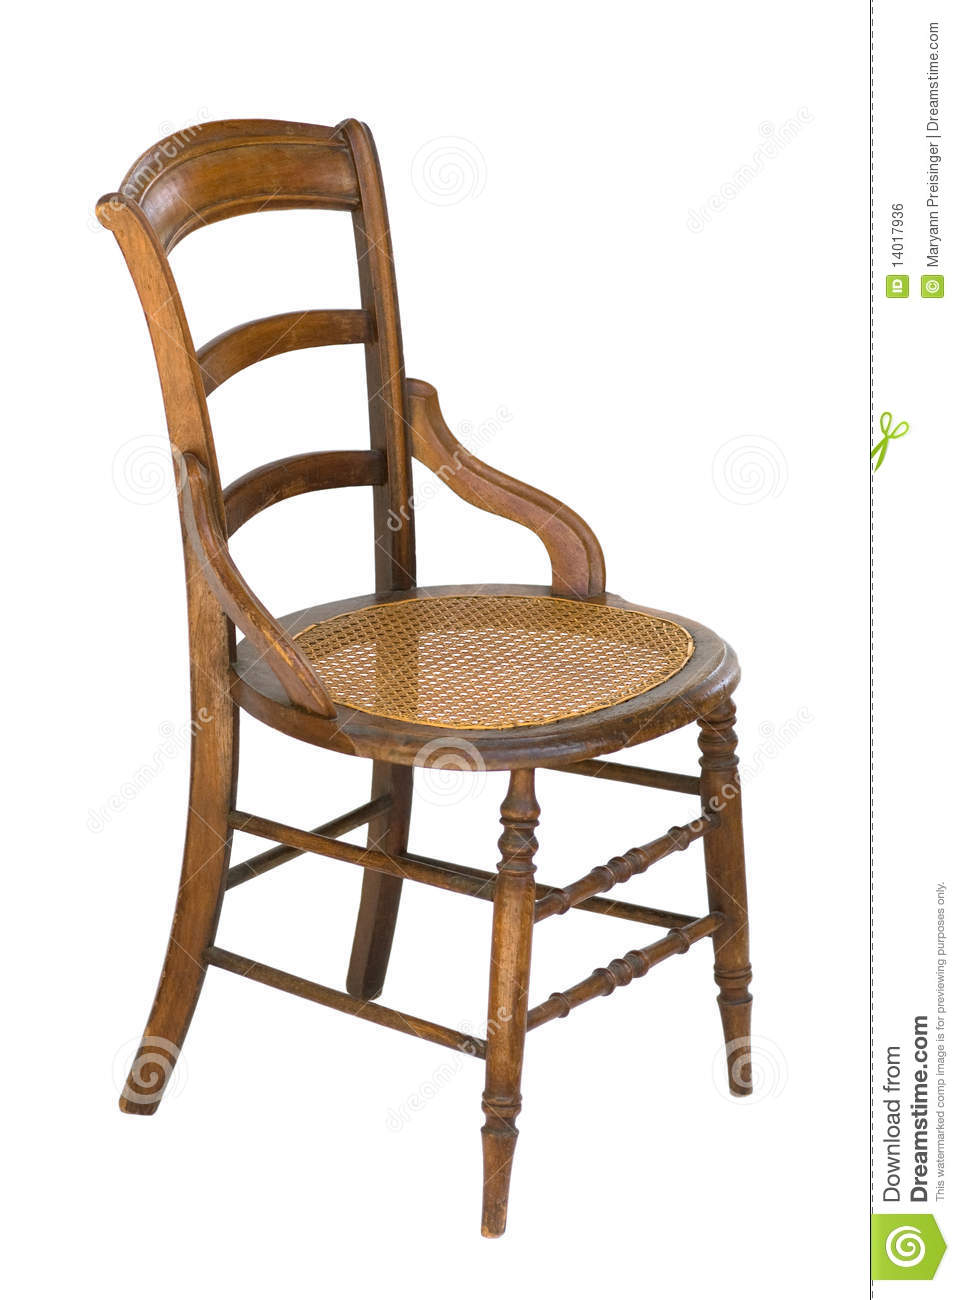 antique wooden chairs pictures snille swivel chair review cane seat wood vintage isolated stock photo image this is an old with spindles and a it has modified arms side view